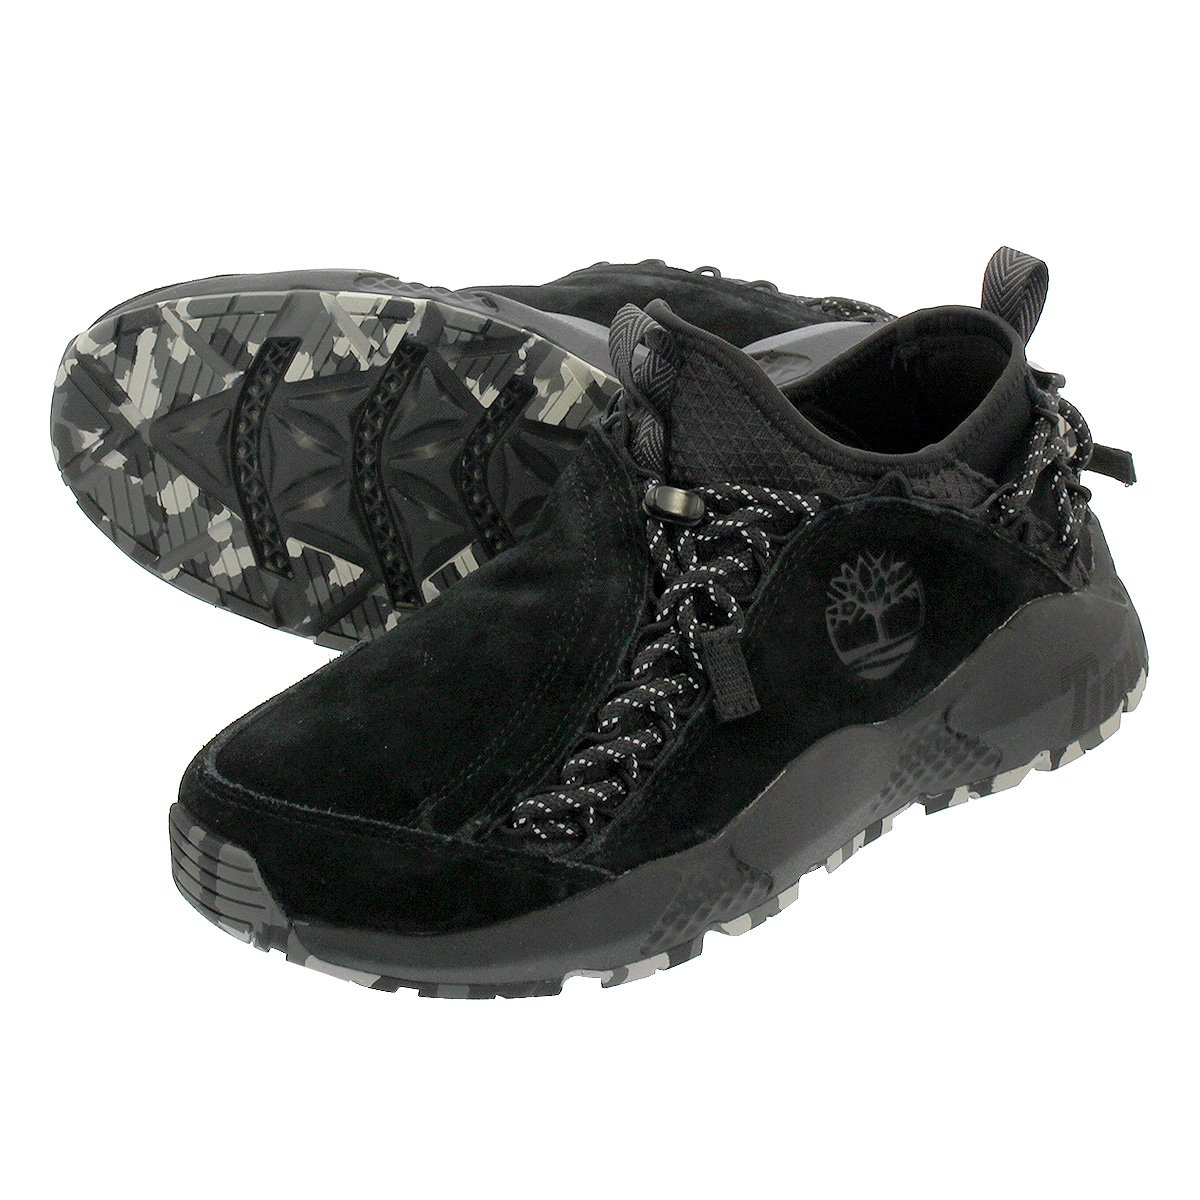 TIMBERLAND RIPCORD BUNGEE Timberland rip cord bungee BLACK SUEDE a1wdb